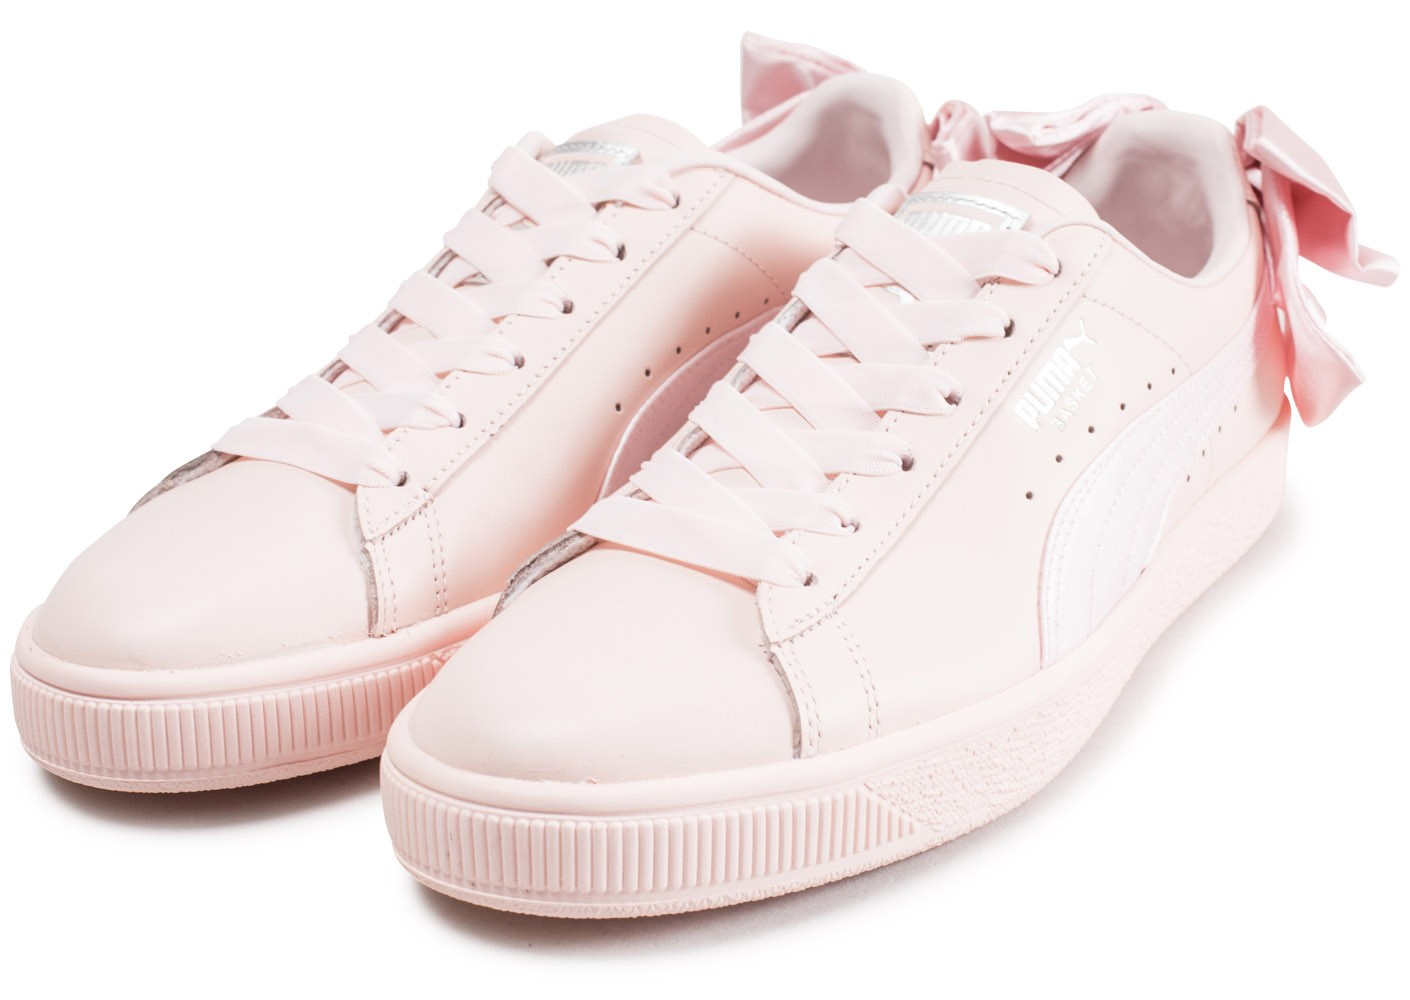 low priced 150be 16b8d ... Chaussures Puma Basket Bow rose vue intérieure ...